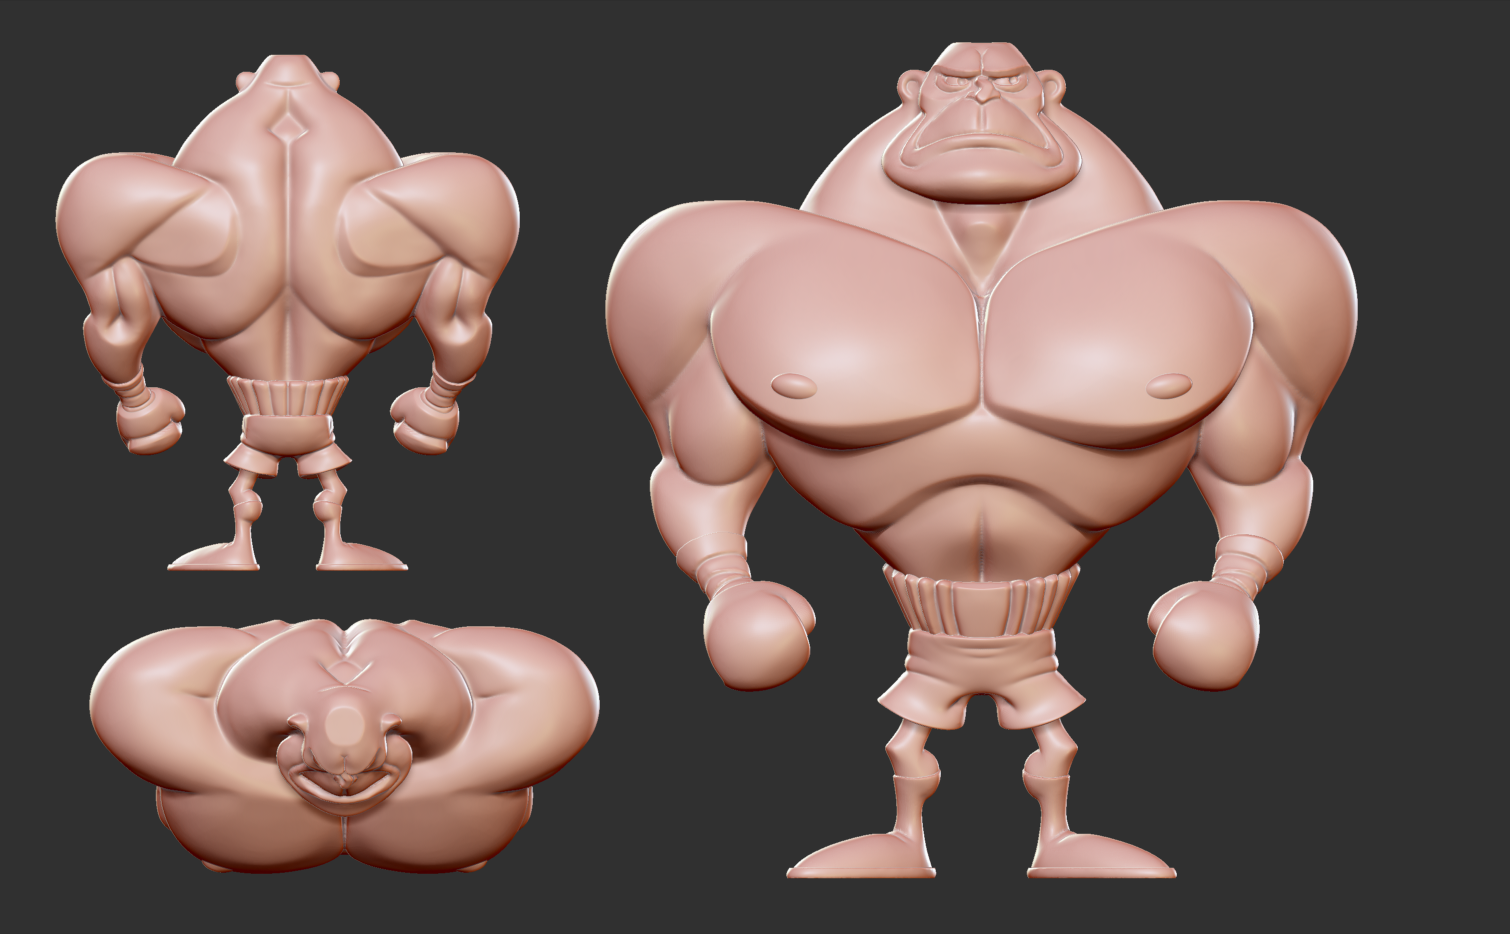 2. Base sculpt